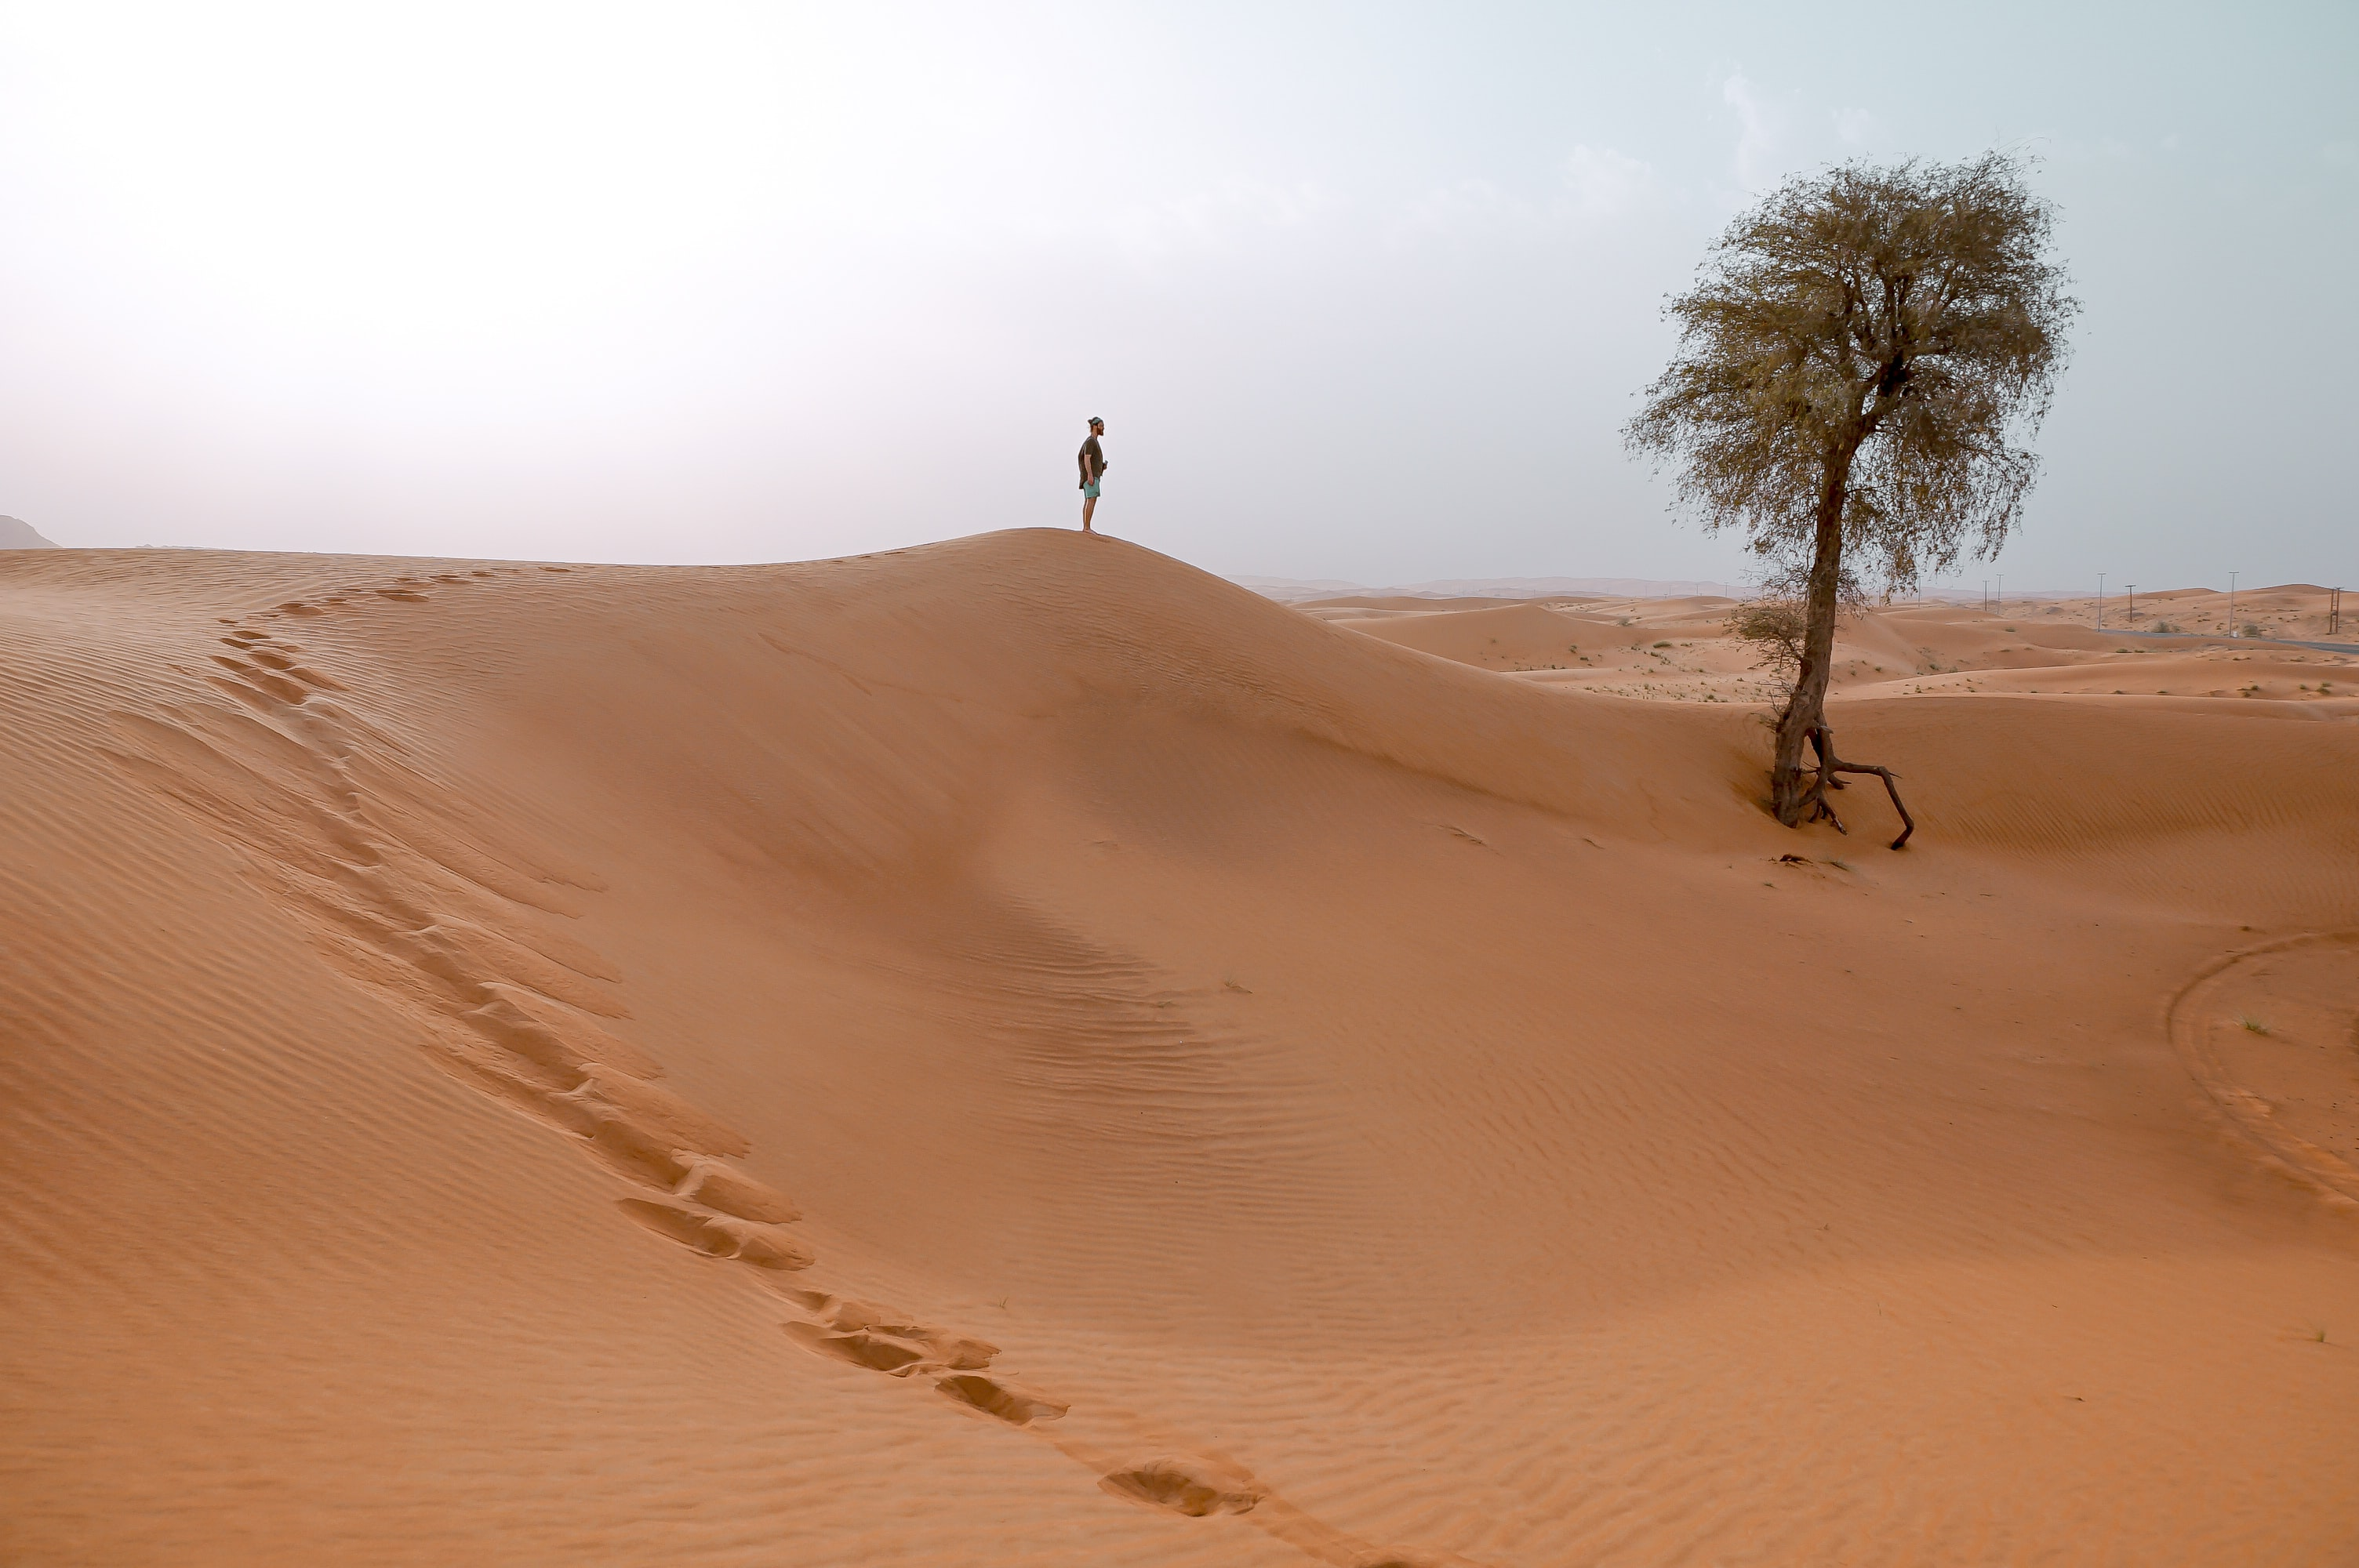 person standing on sand dune near the tree